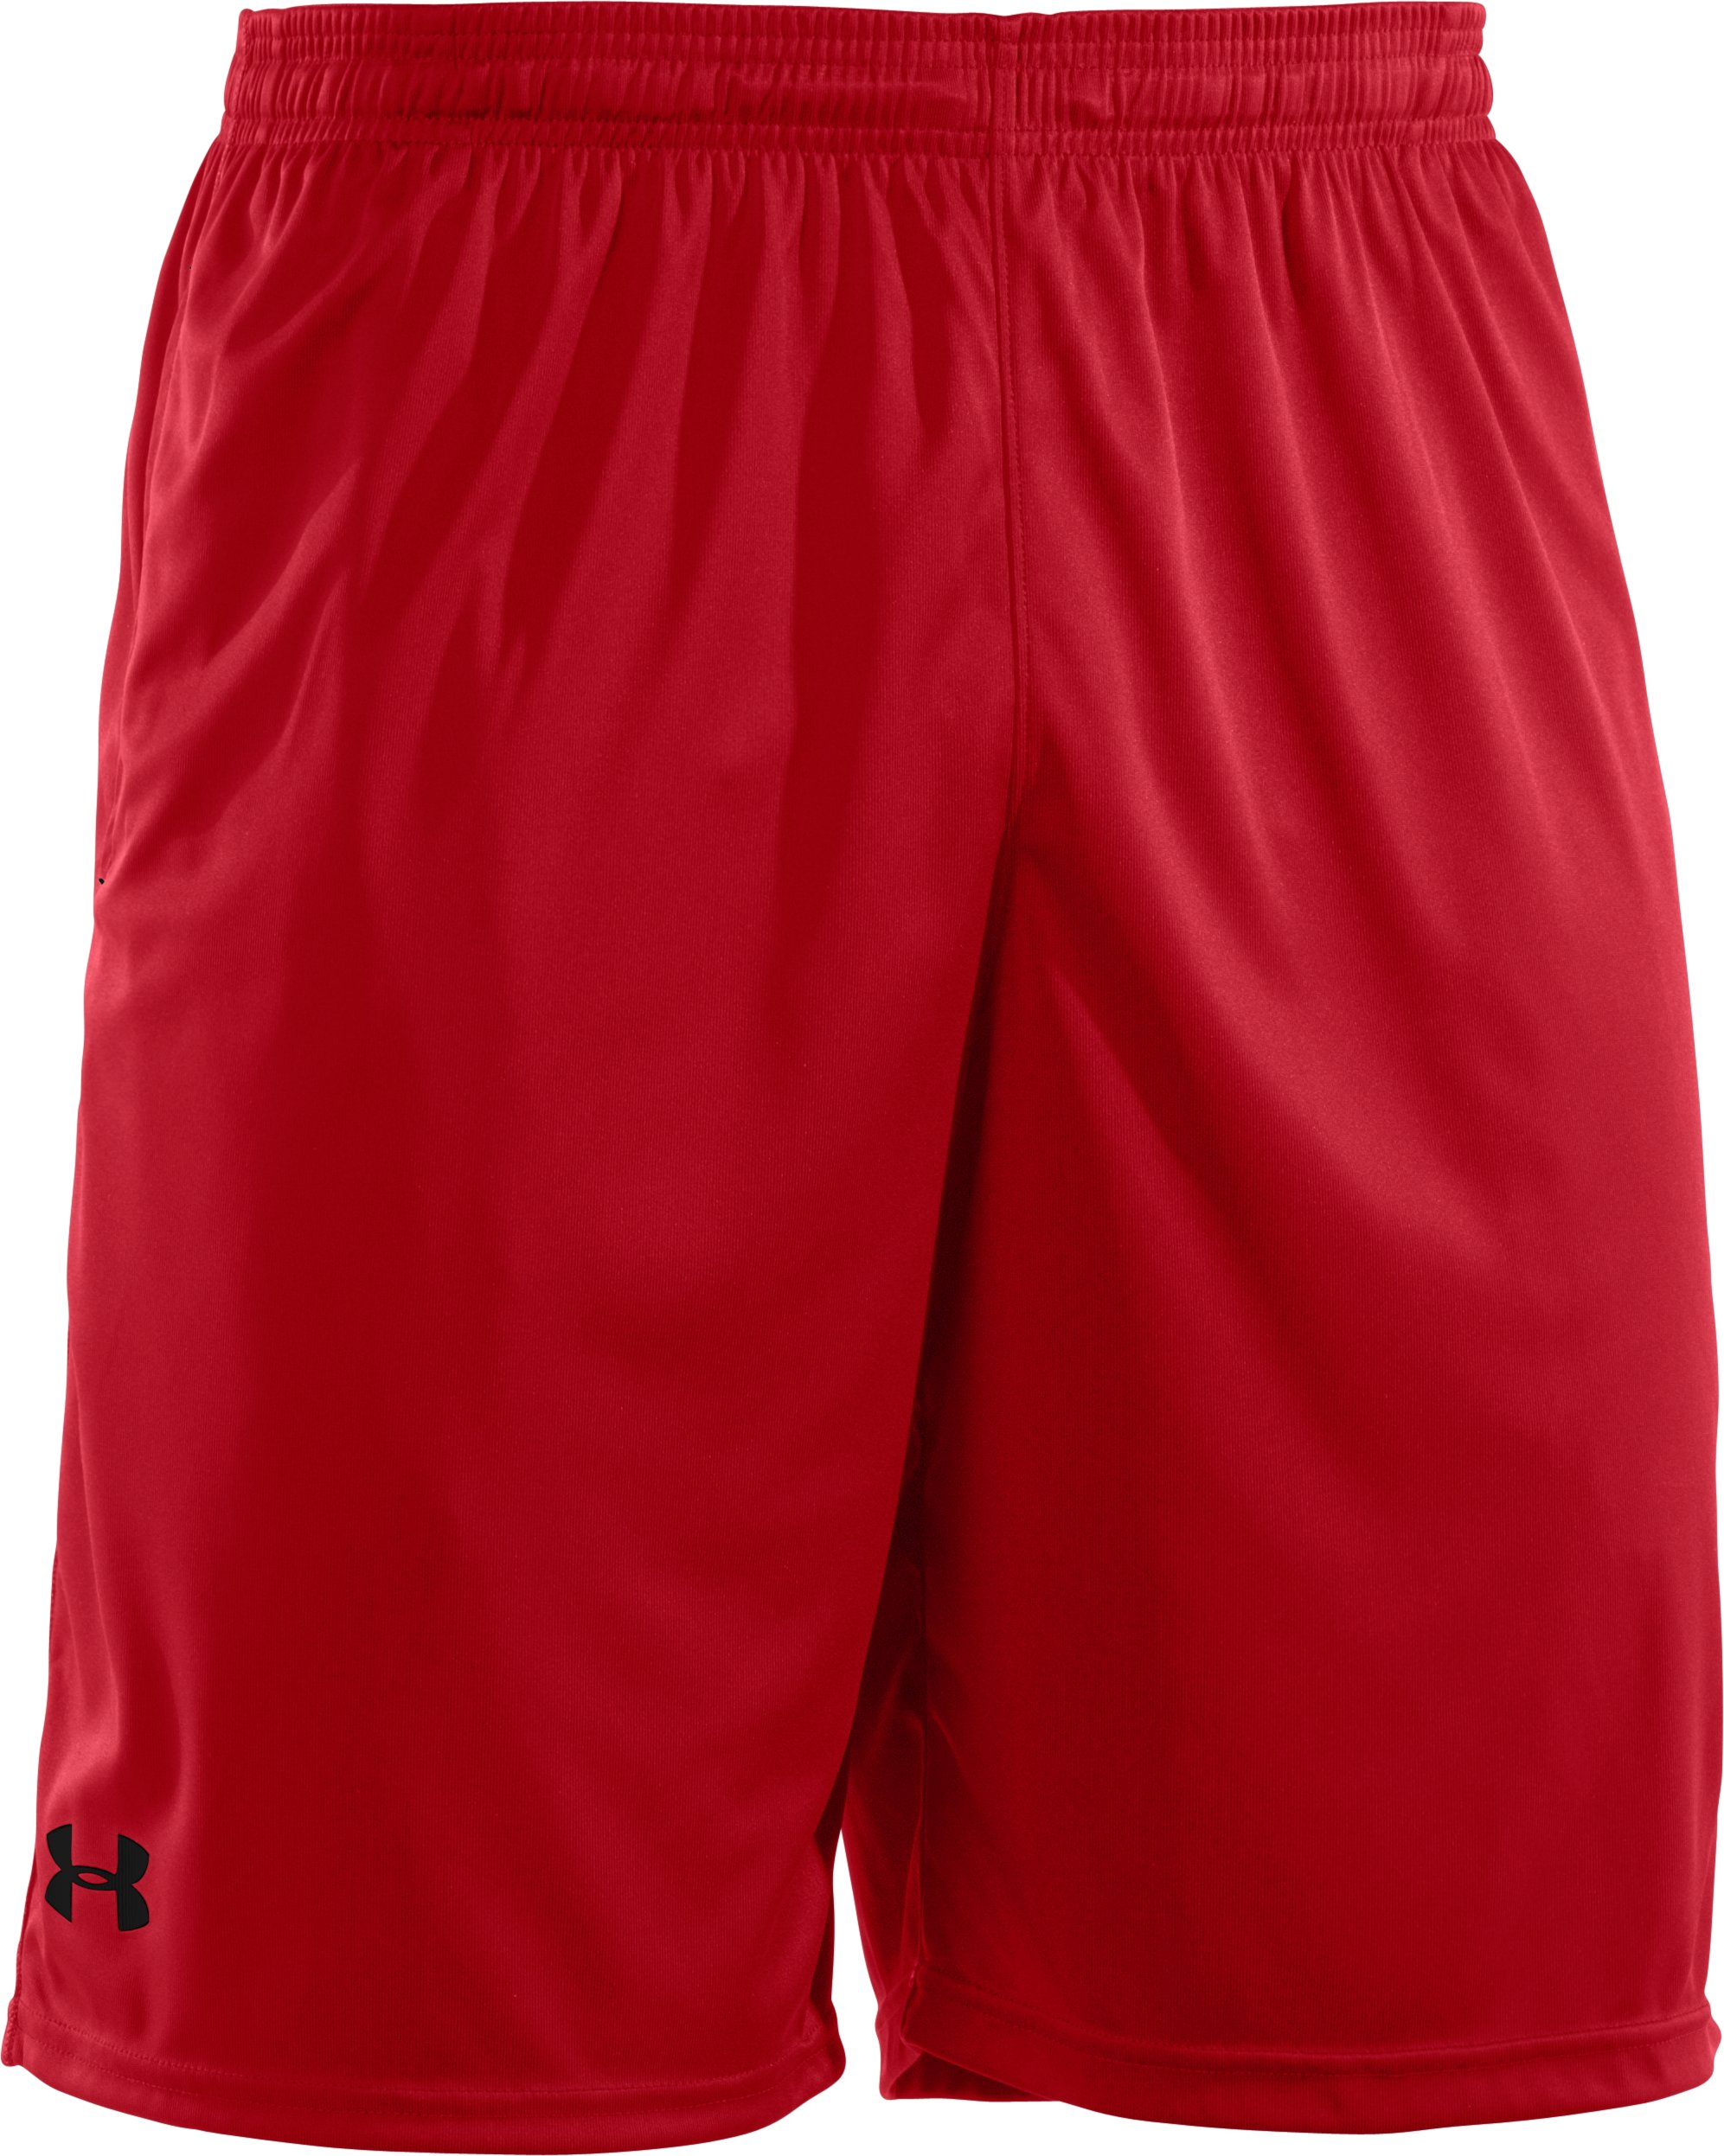 Men's UA Micro Solid Shorts, Red, undefined